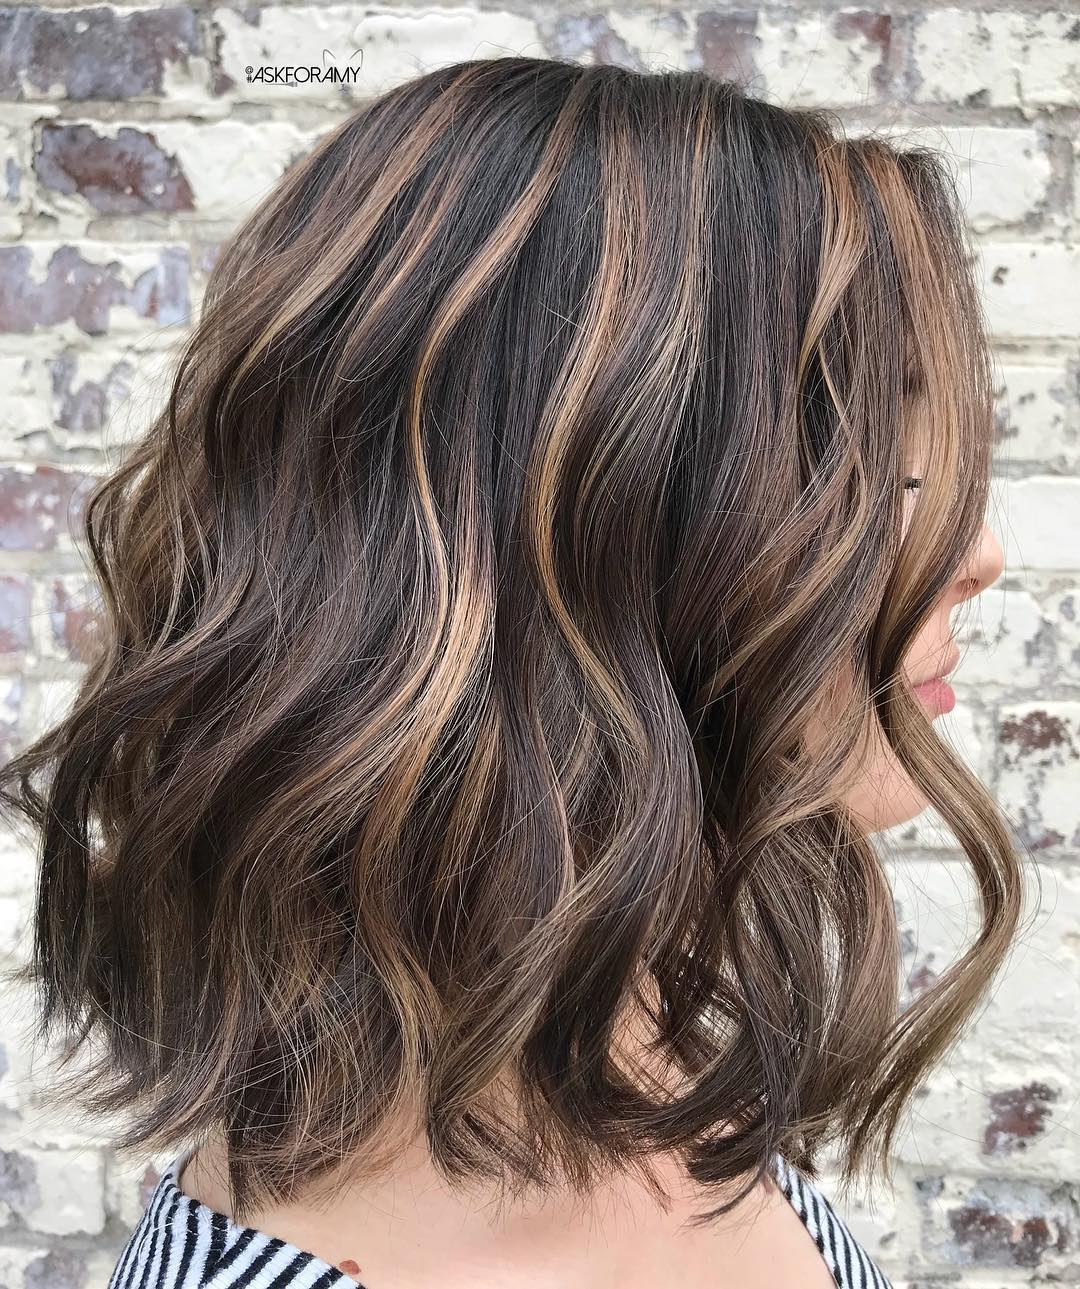 12 Dark Brown Hair with Highlights Ideas for 12 - Hair Adviser